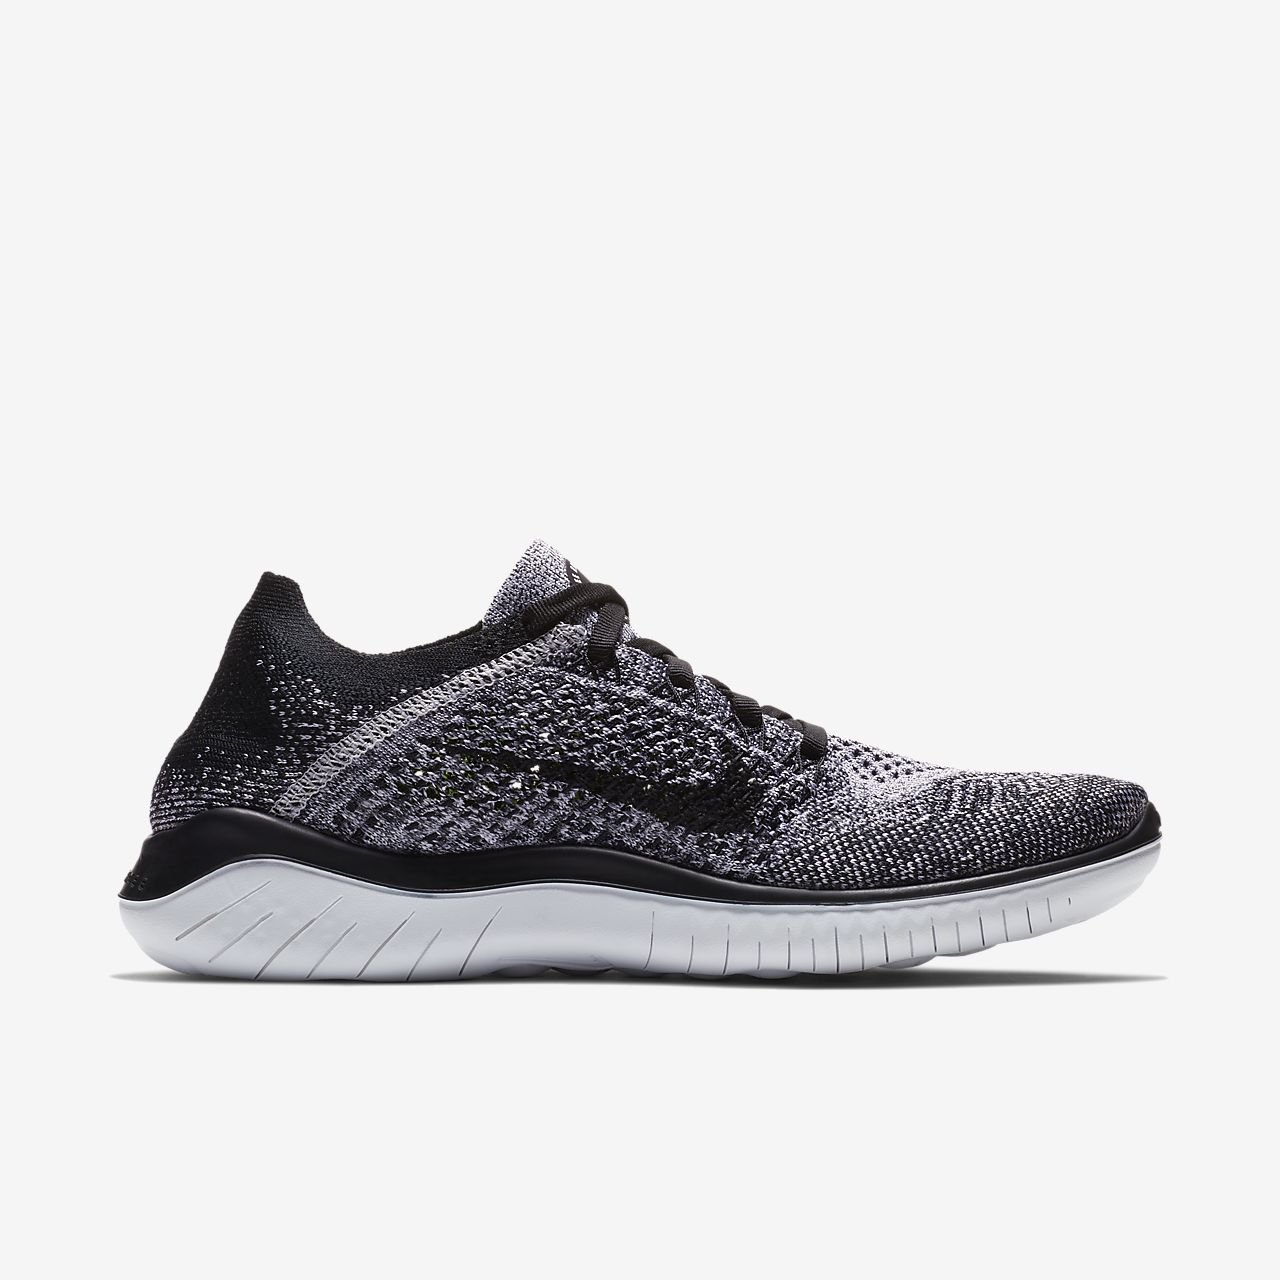 commander chaussure nike 2018 site